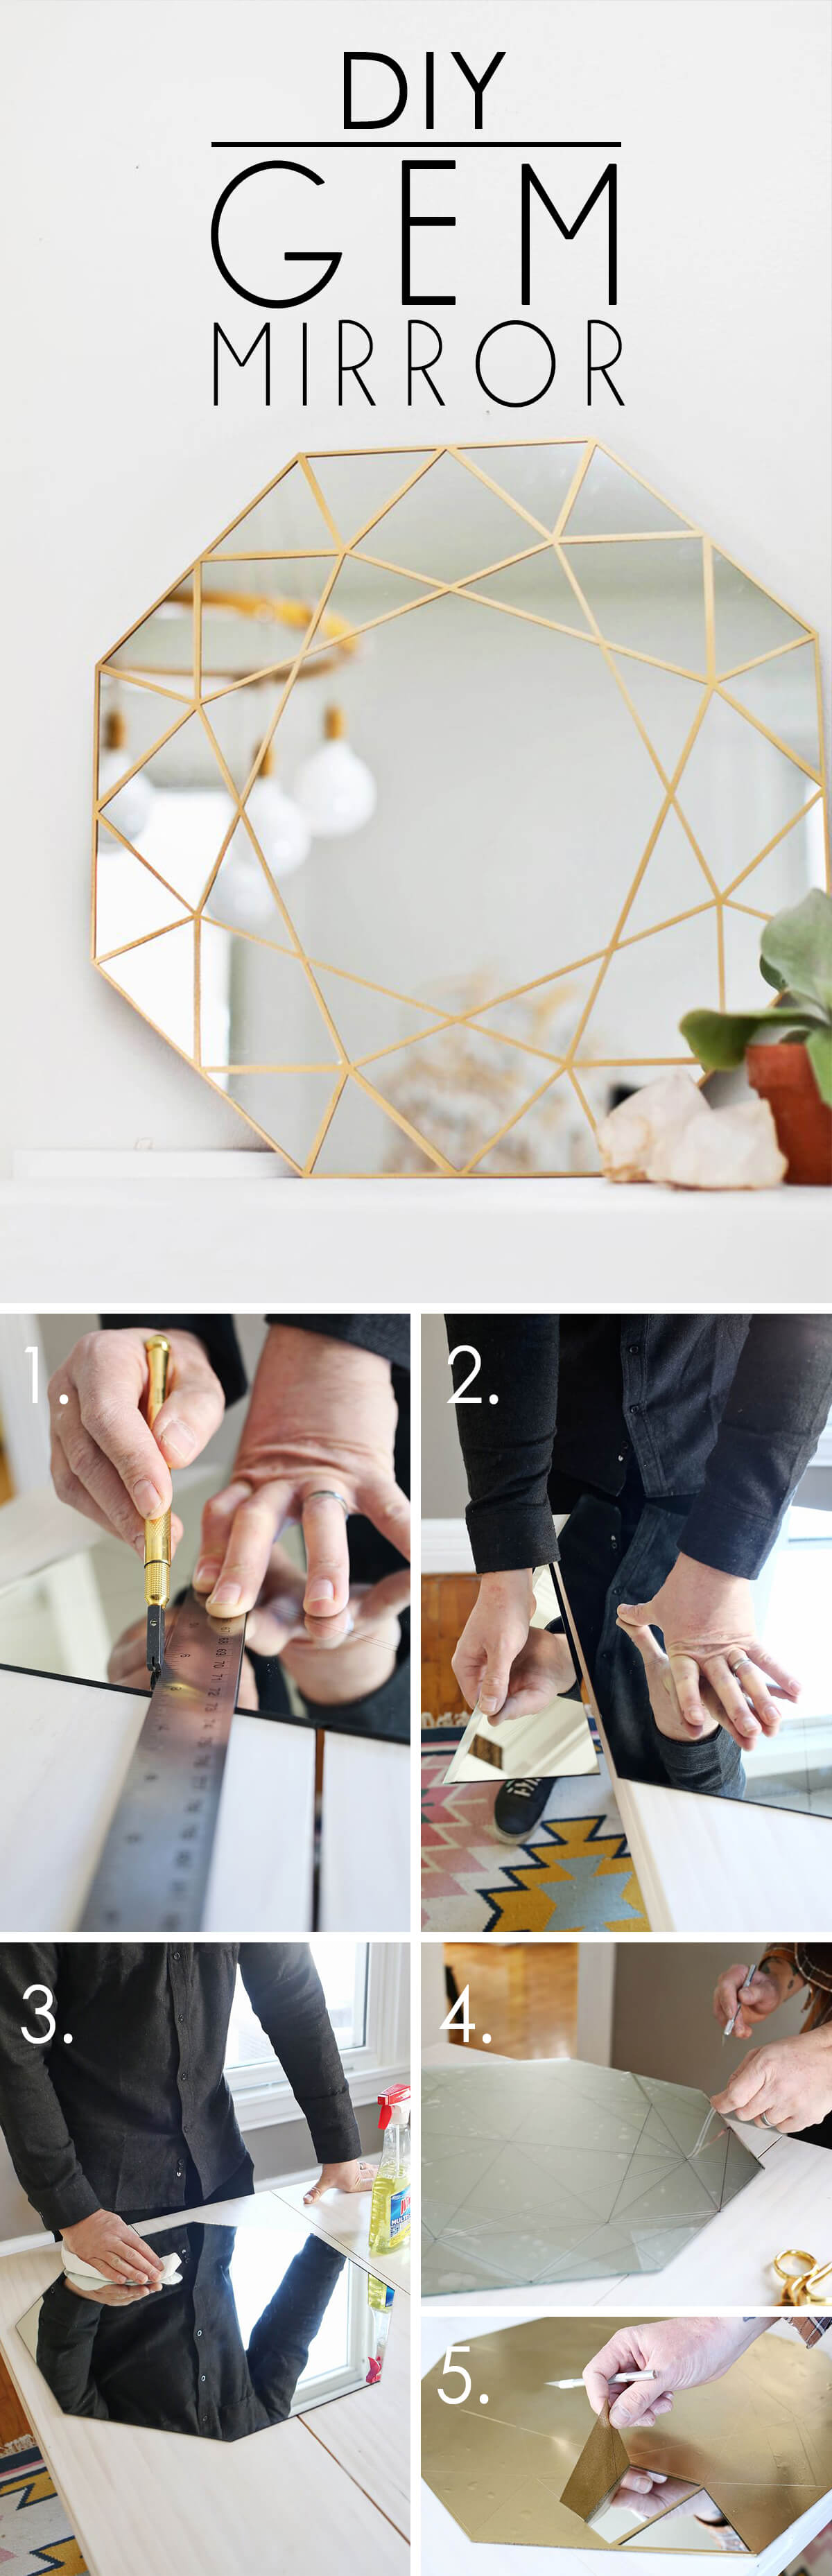 29 Best DIY Mirror Ideas and Designs for 2018